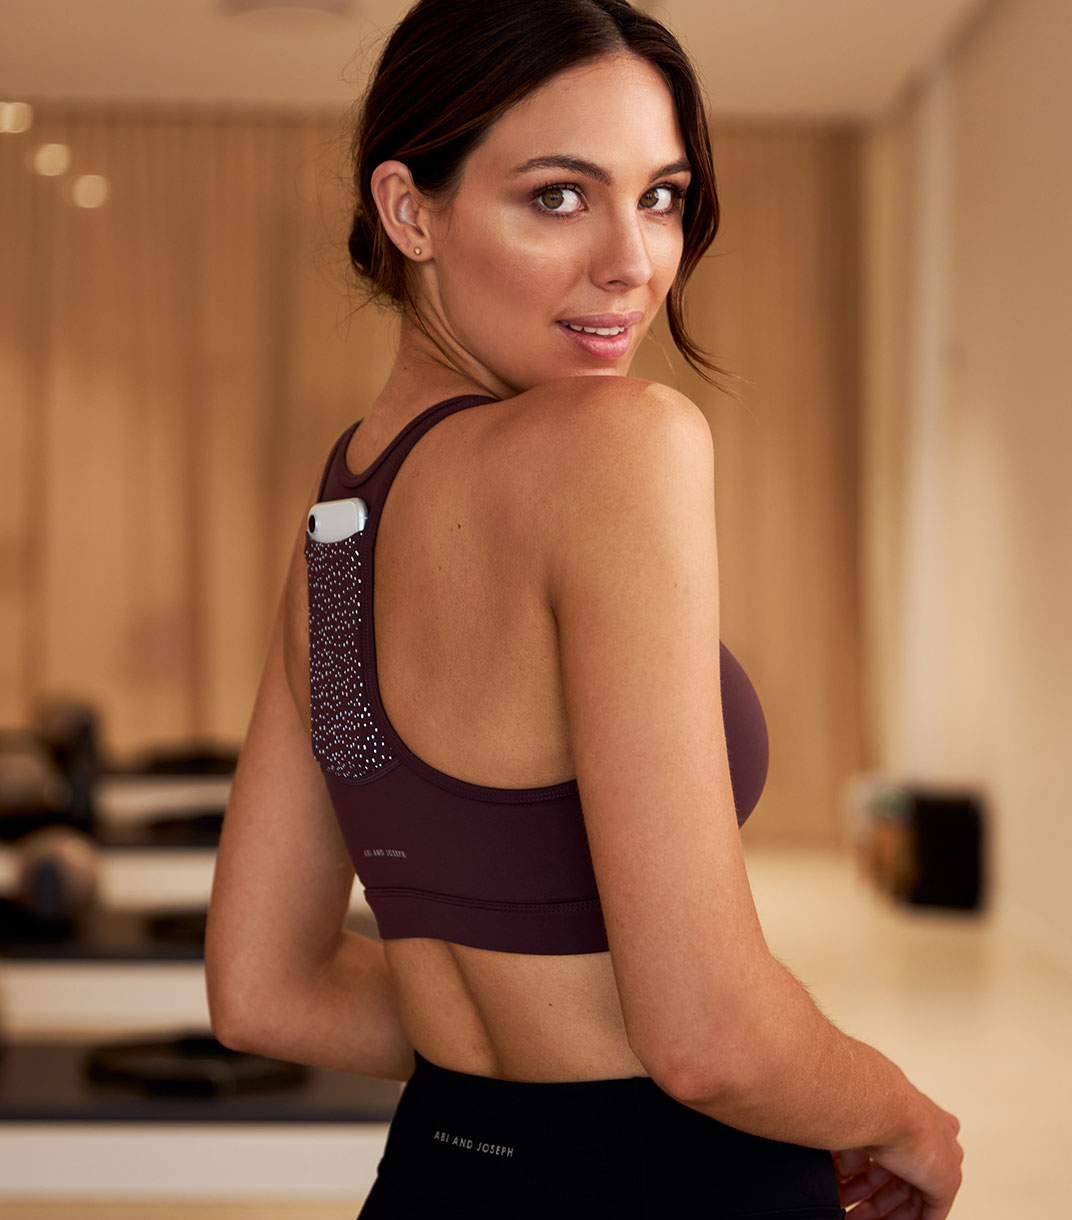 INSPIRE YOUR NEXT WORKOUT